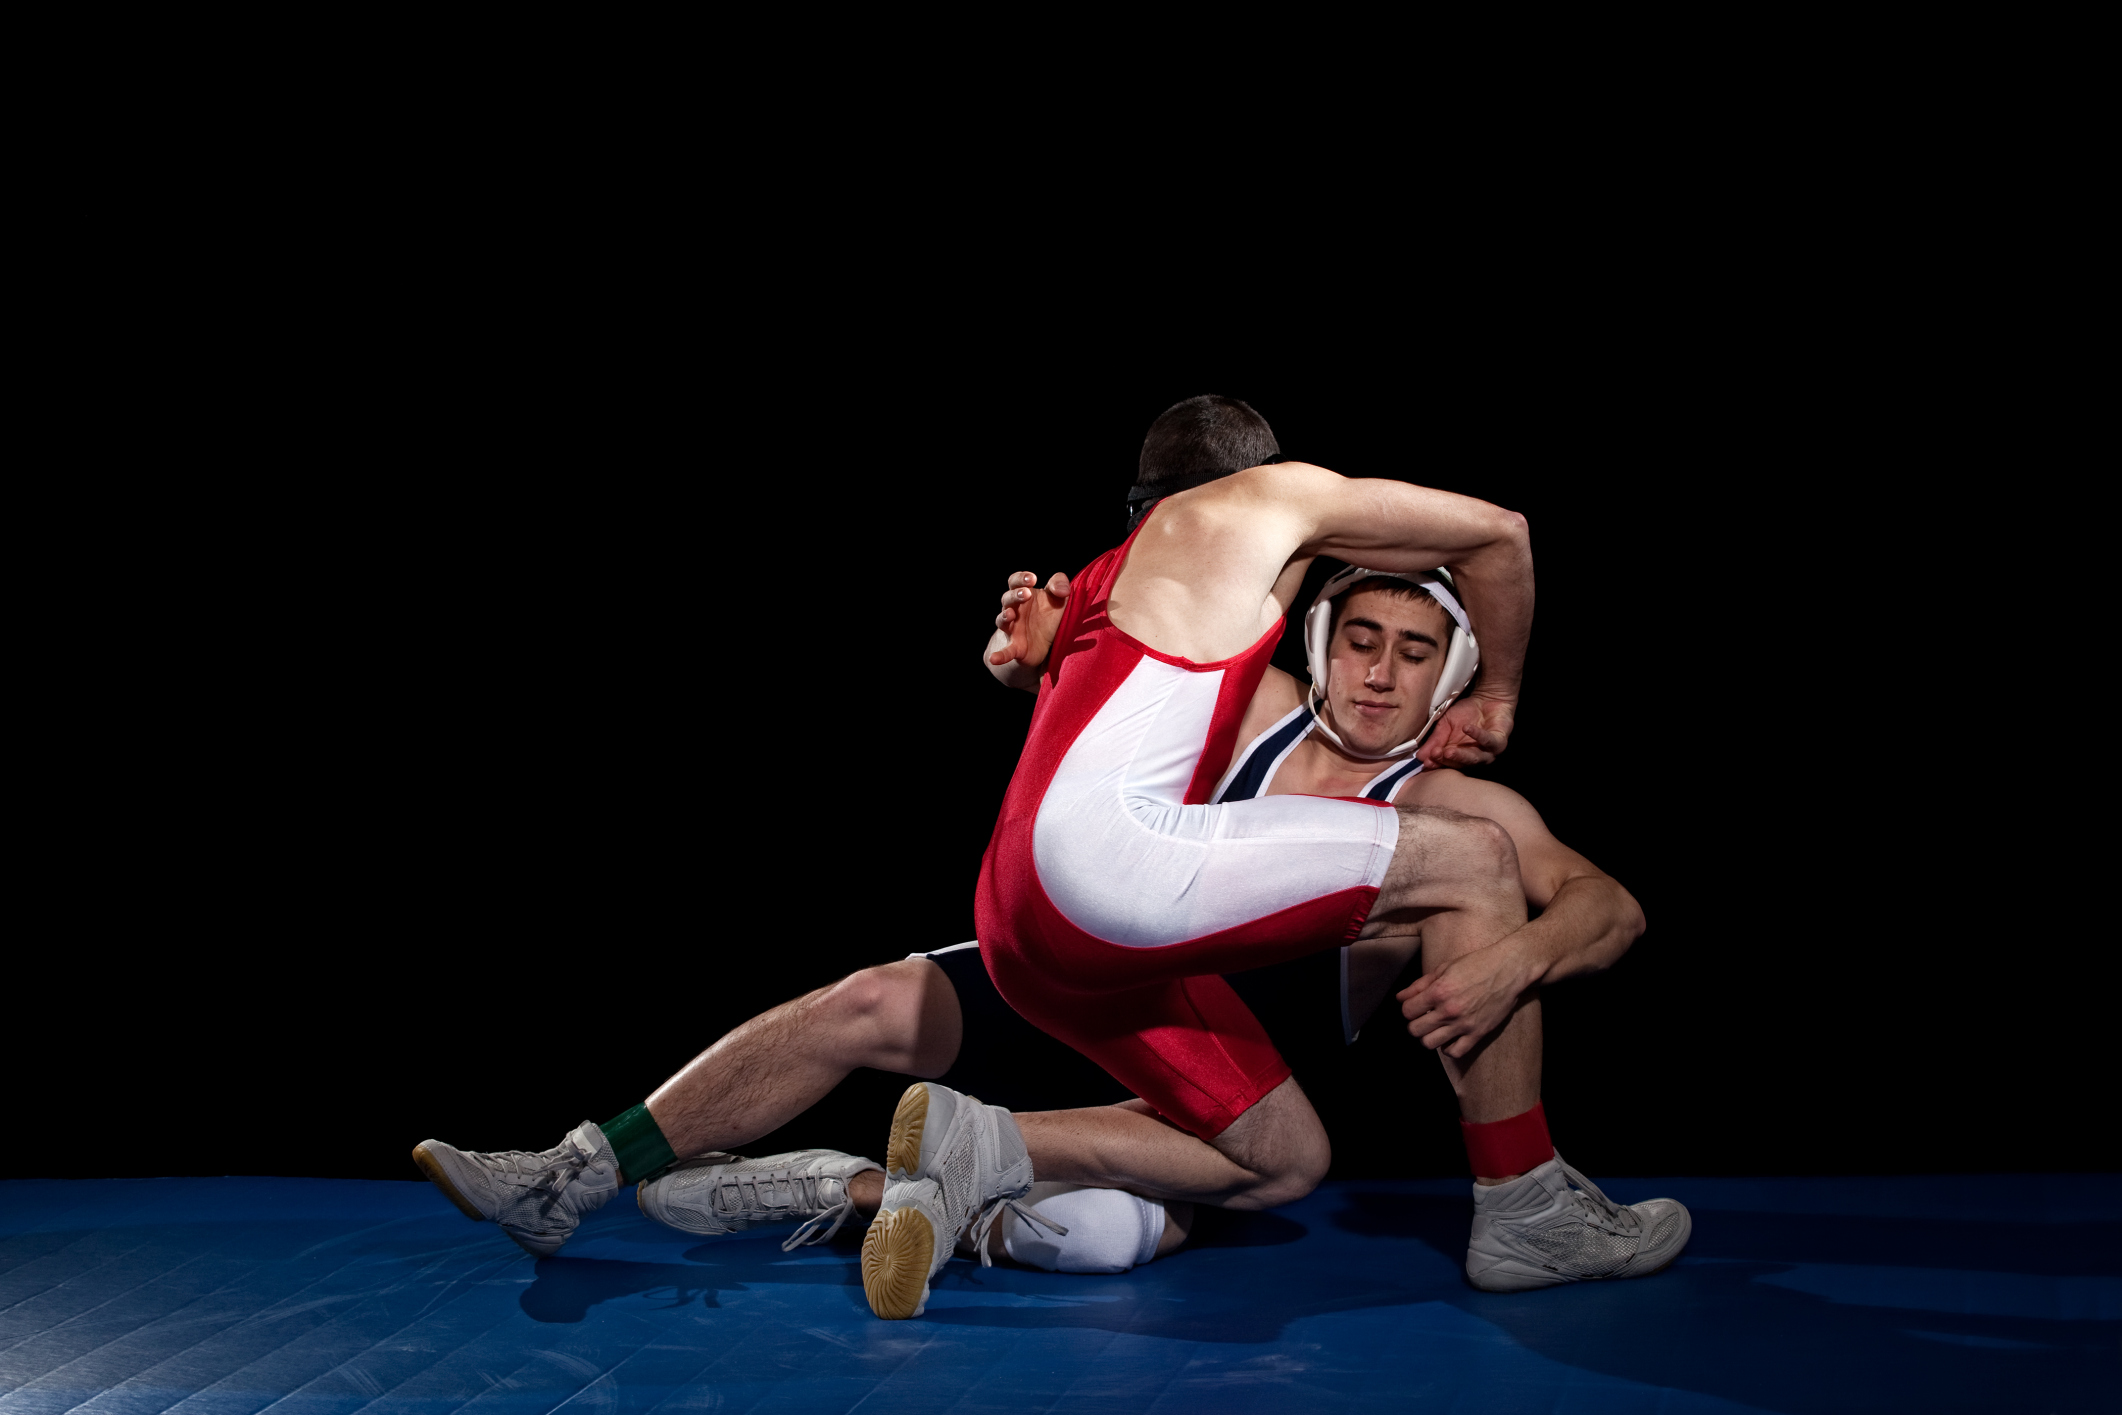 List of Moves for Freestyle Wrestling